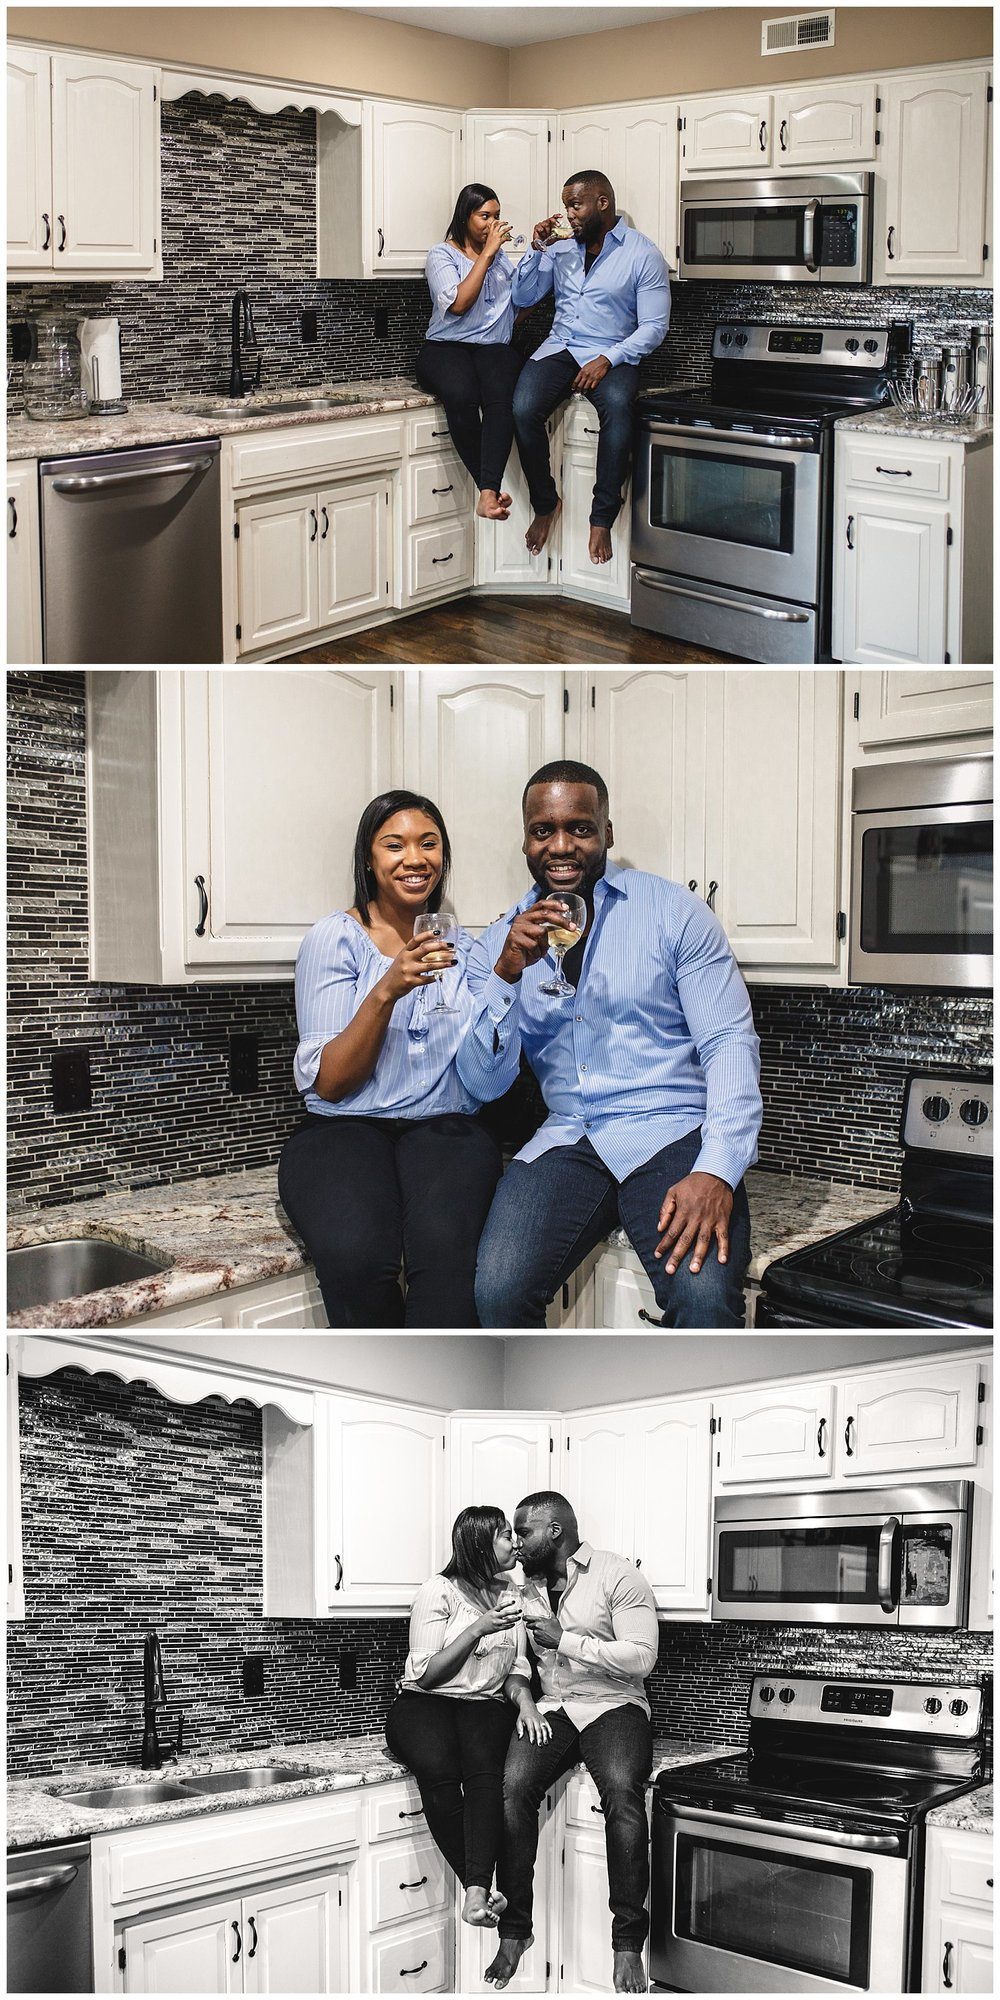 Kansas_City_Engagment_In_Home_Session_Kelsey_Diane_Photography_Wedding_Photographer_Engagment_Photographer_0111_Bri_Prime.jpg